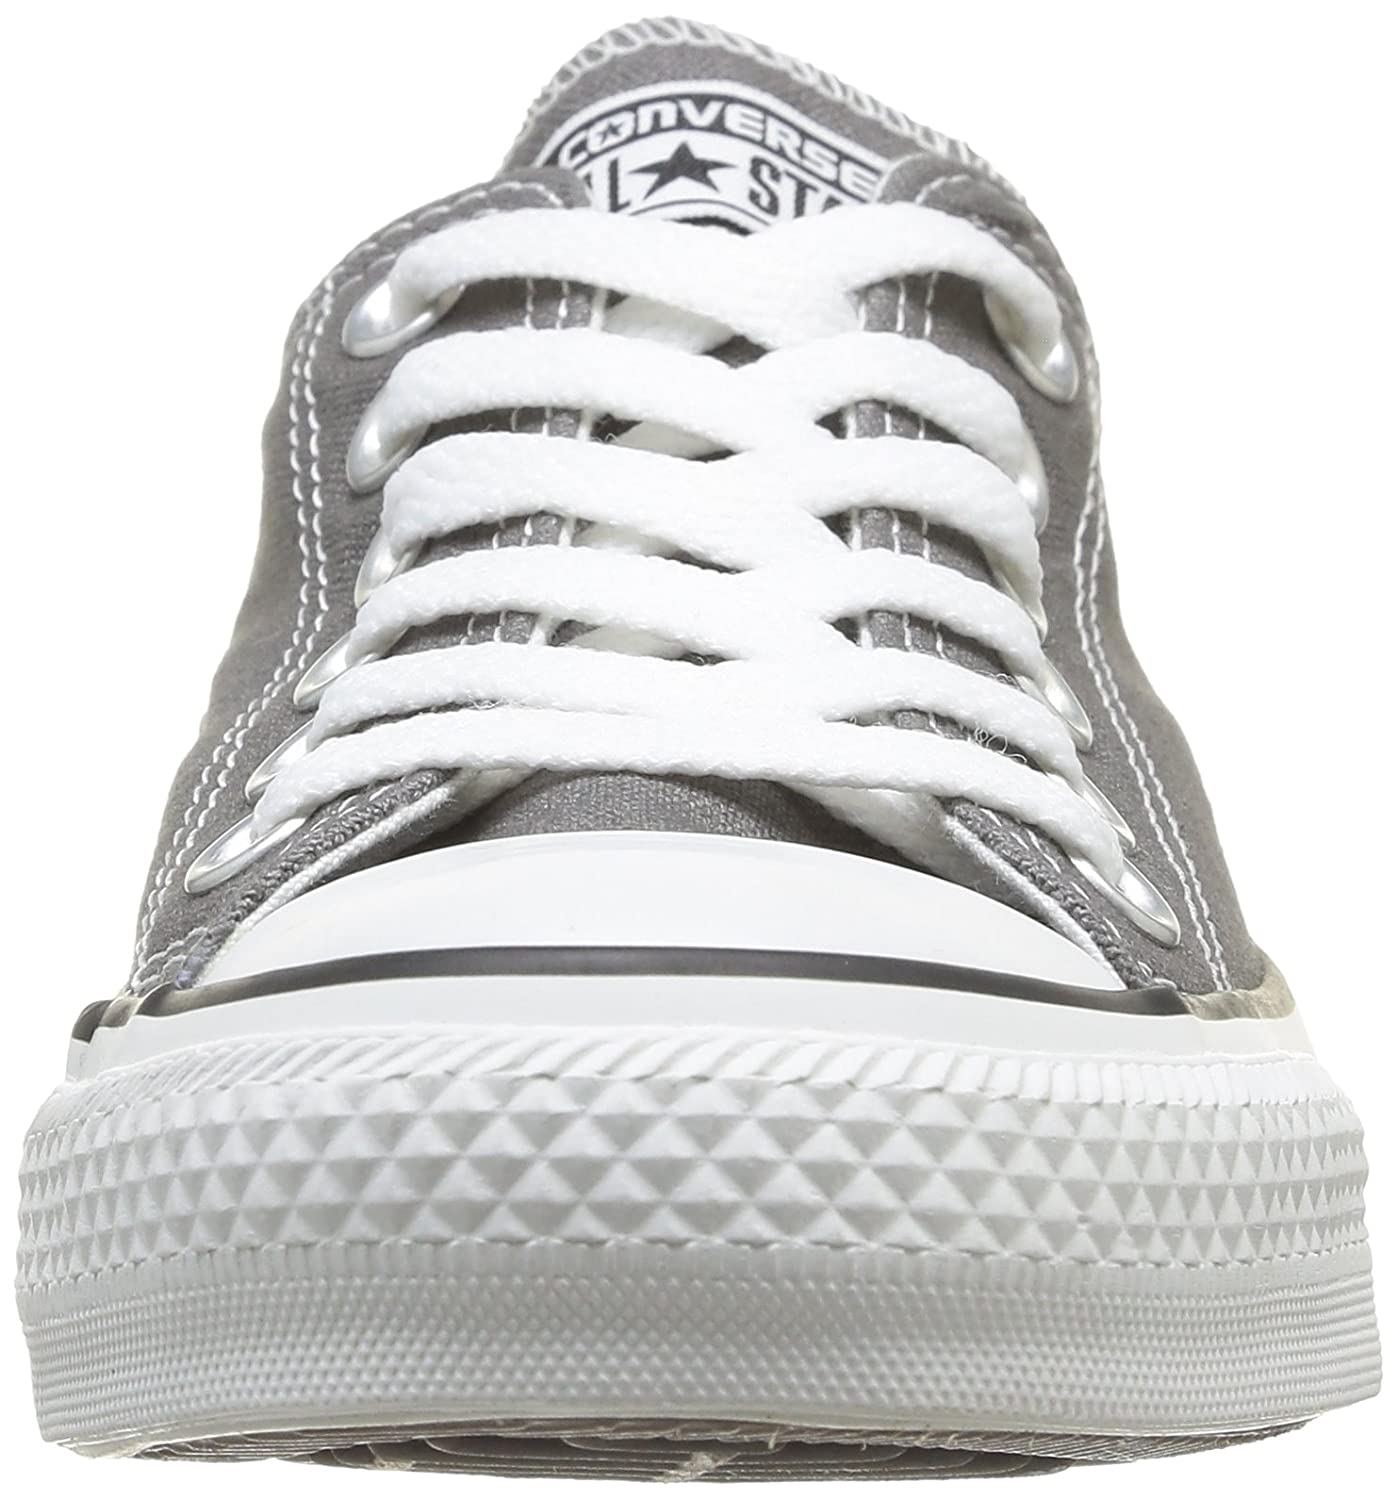 converse chuck taylor as speciality ox unisex